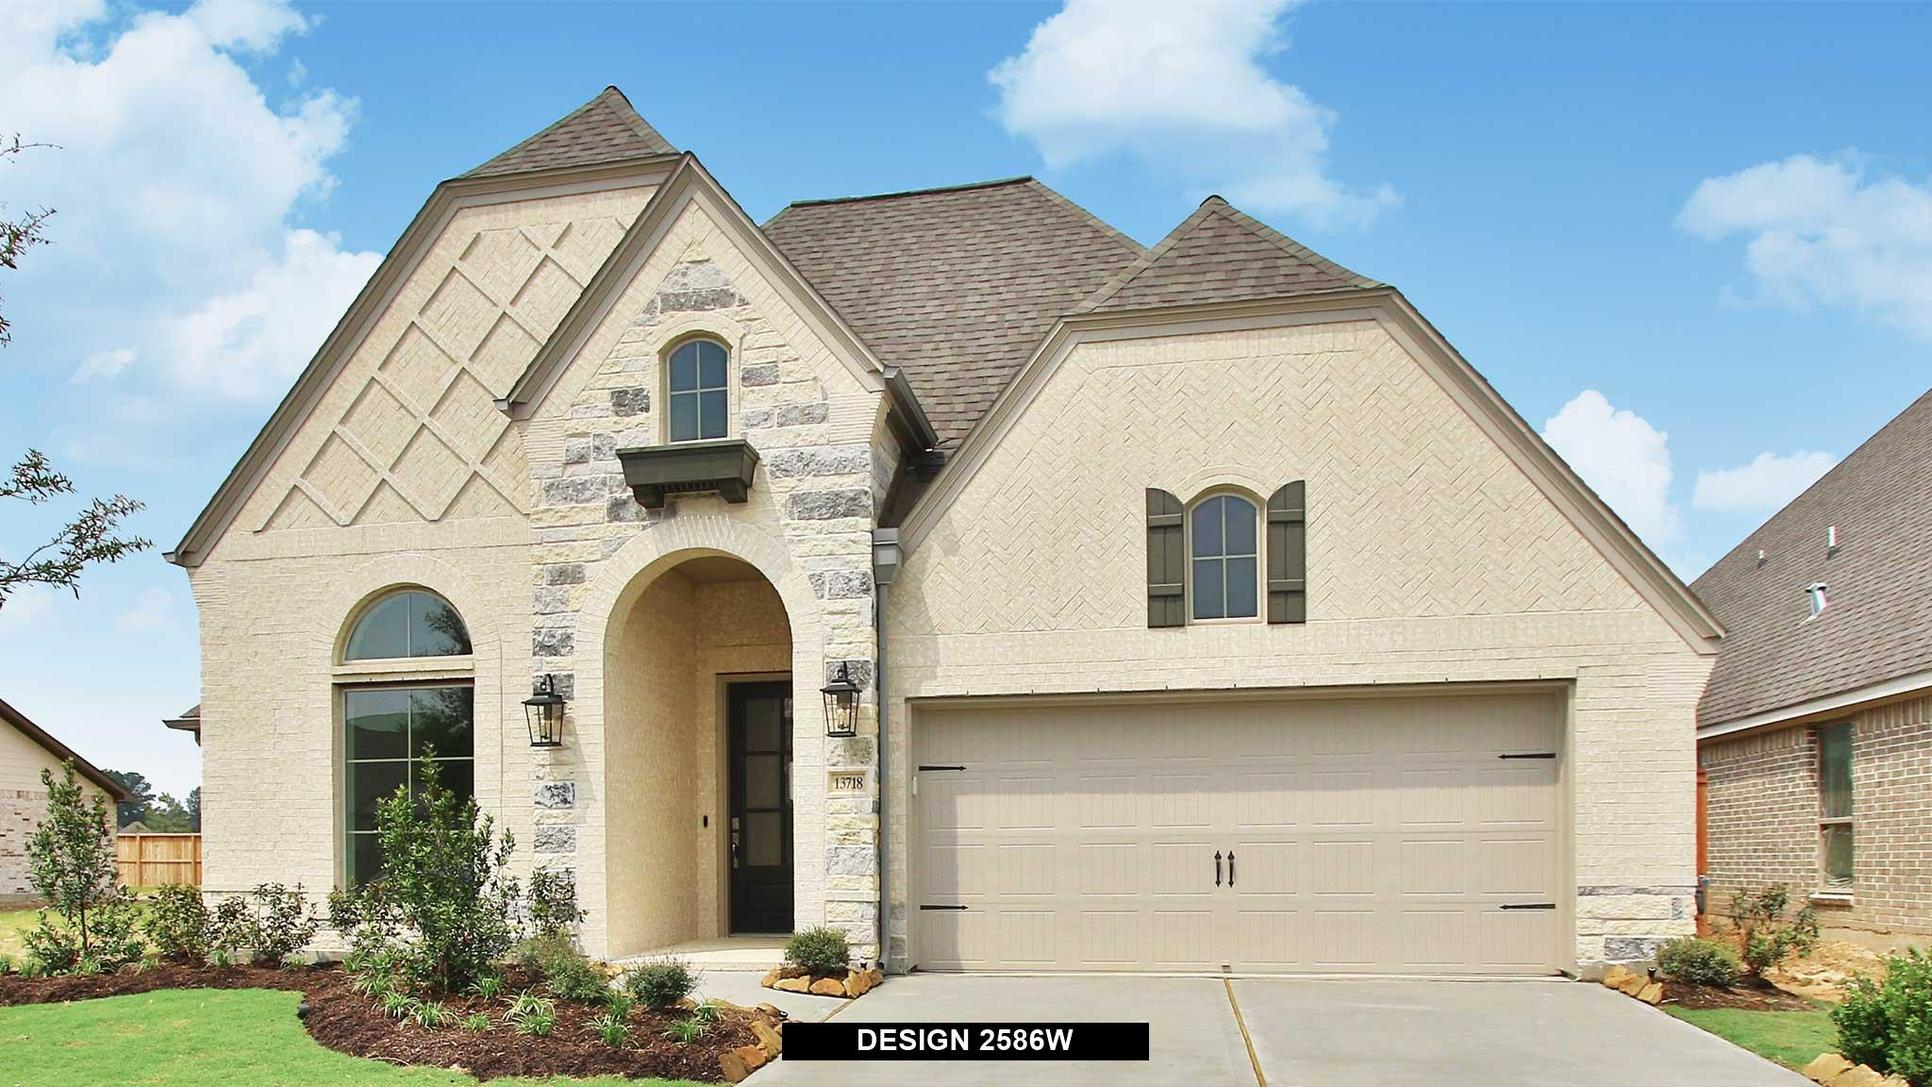 Plan 2586W:Representative photo.  Features and specifications may vary by community.